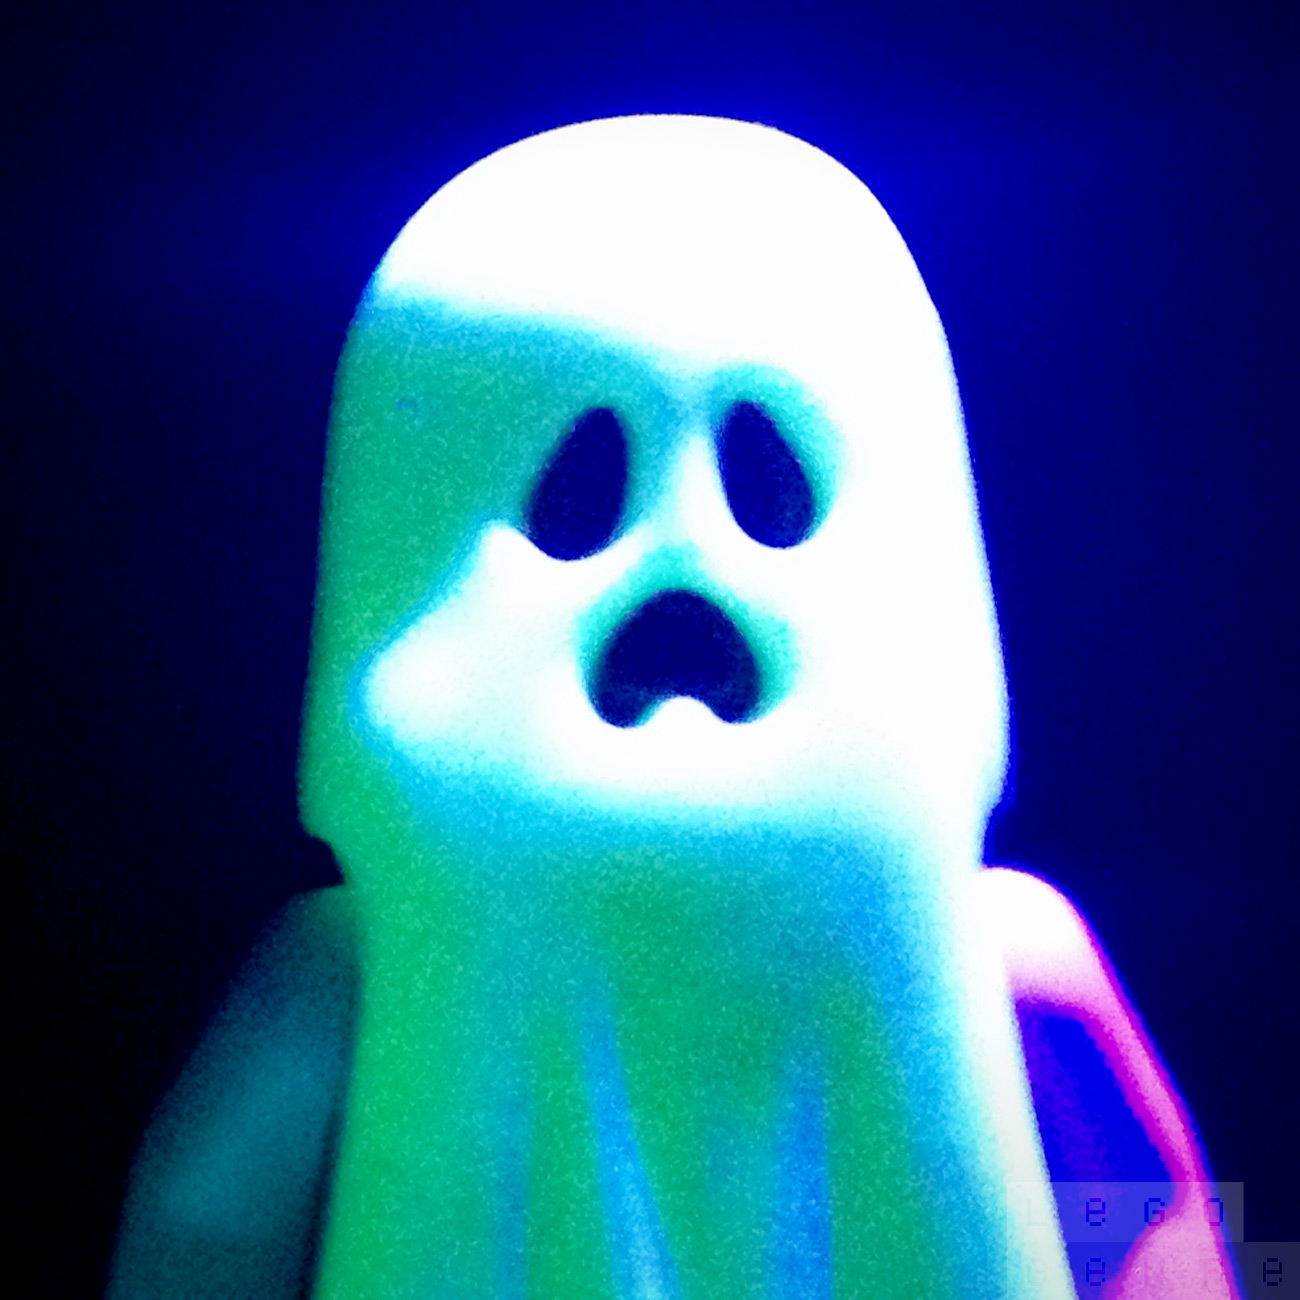 LegoGenre 00273: The Ghost With The Most